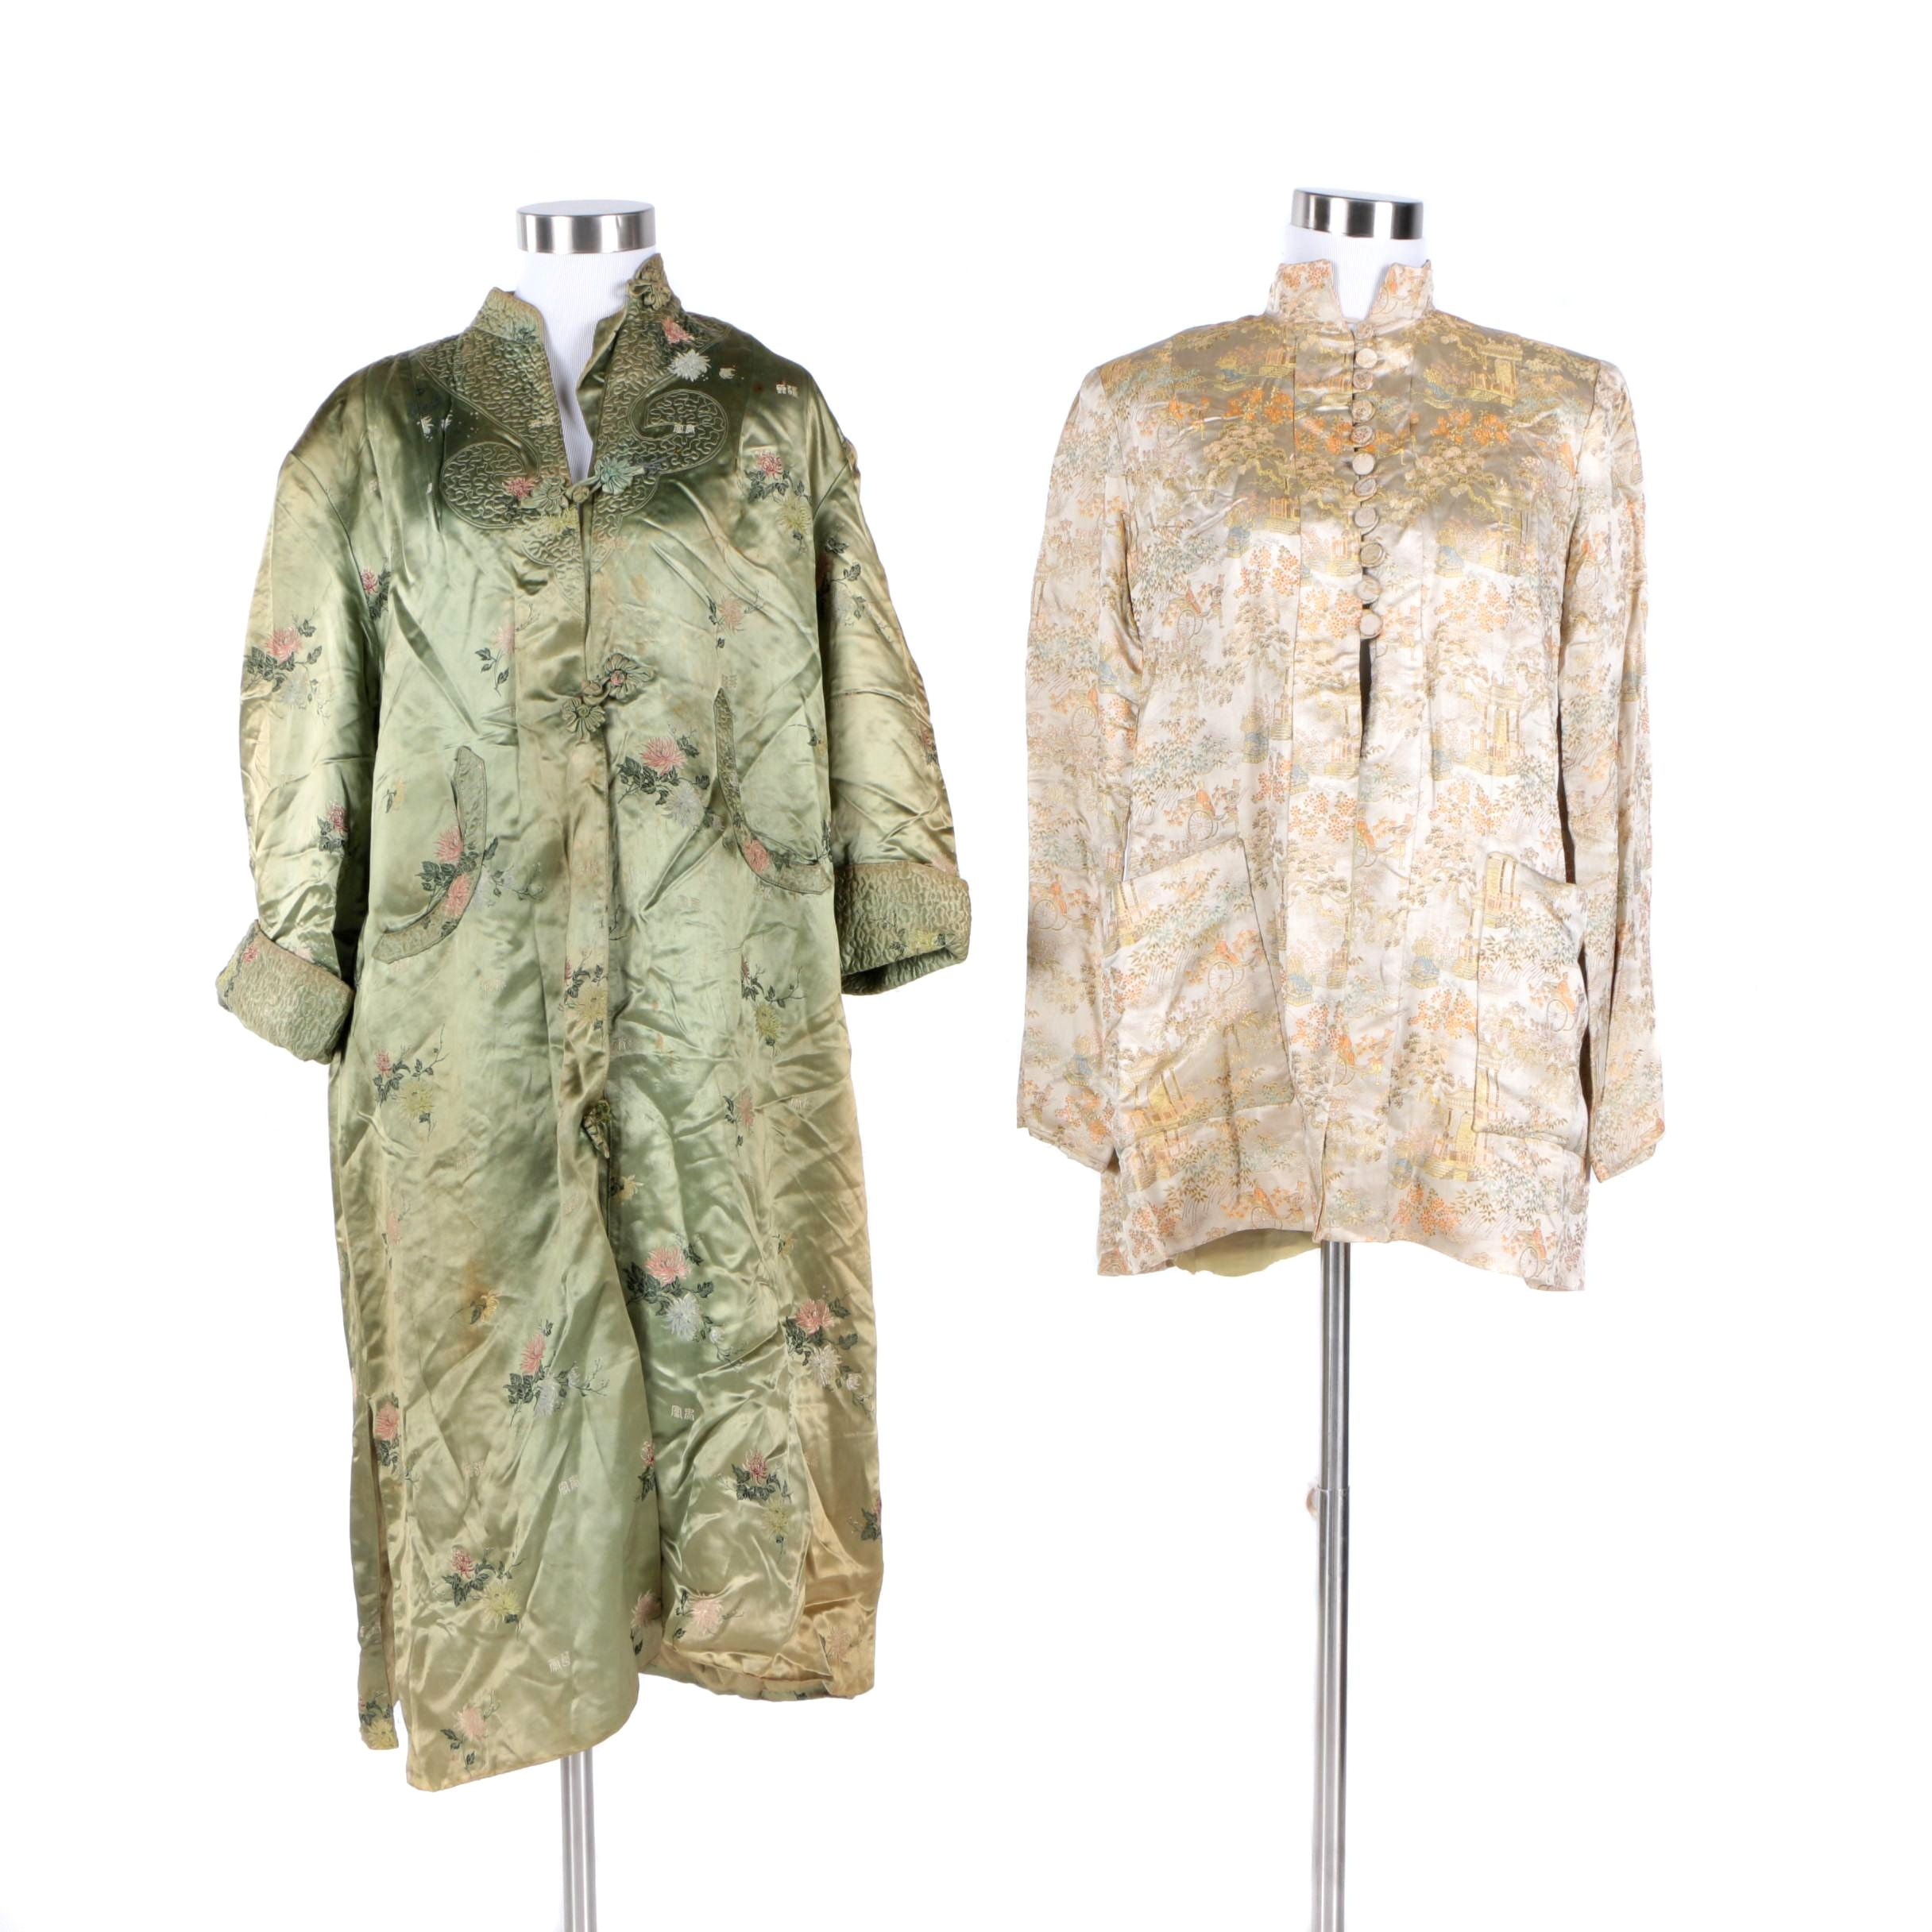 Chinese Brocade Jackets